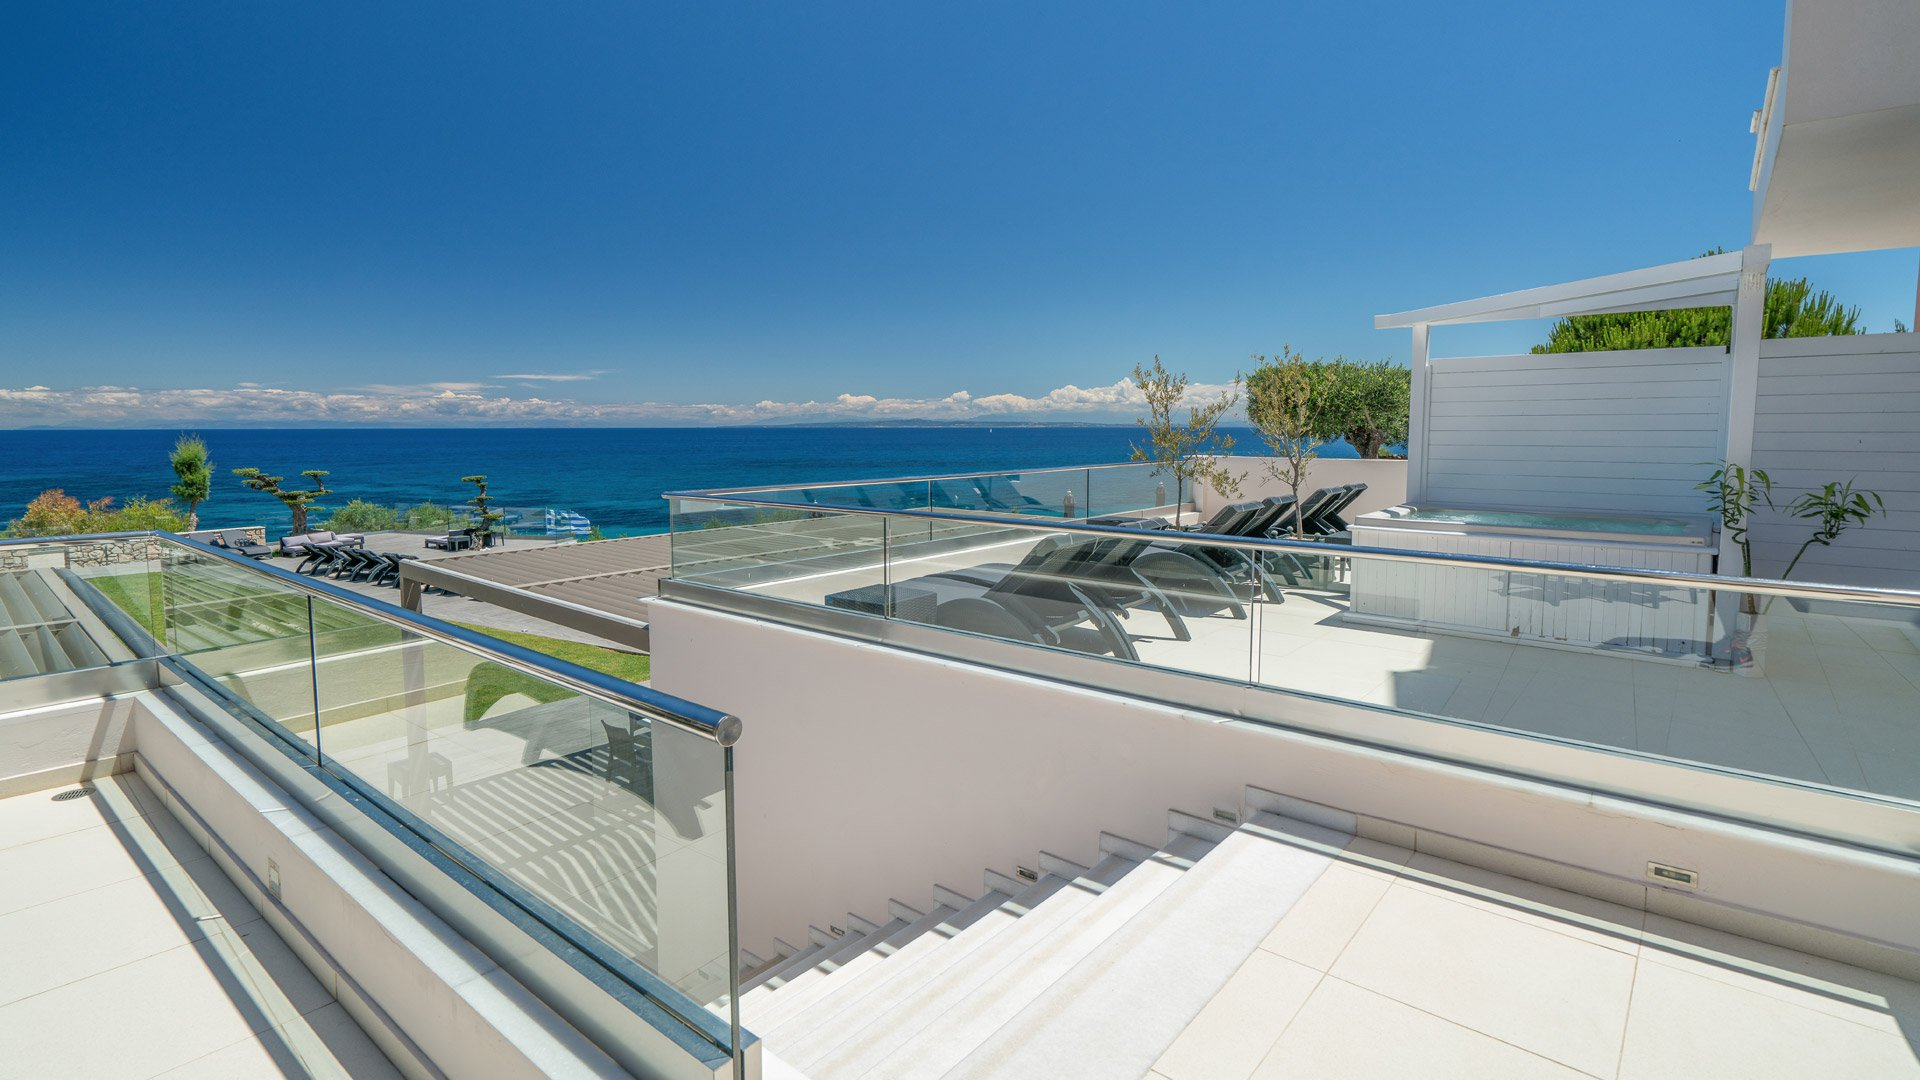 The veranda and Ionian Sea View that Kymothoe Elite Provides in Zakynthos